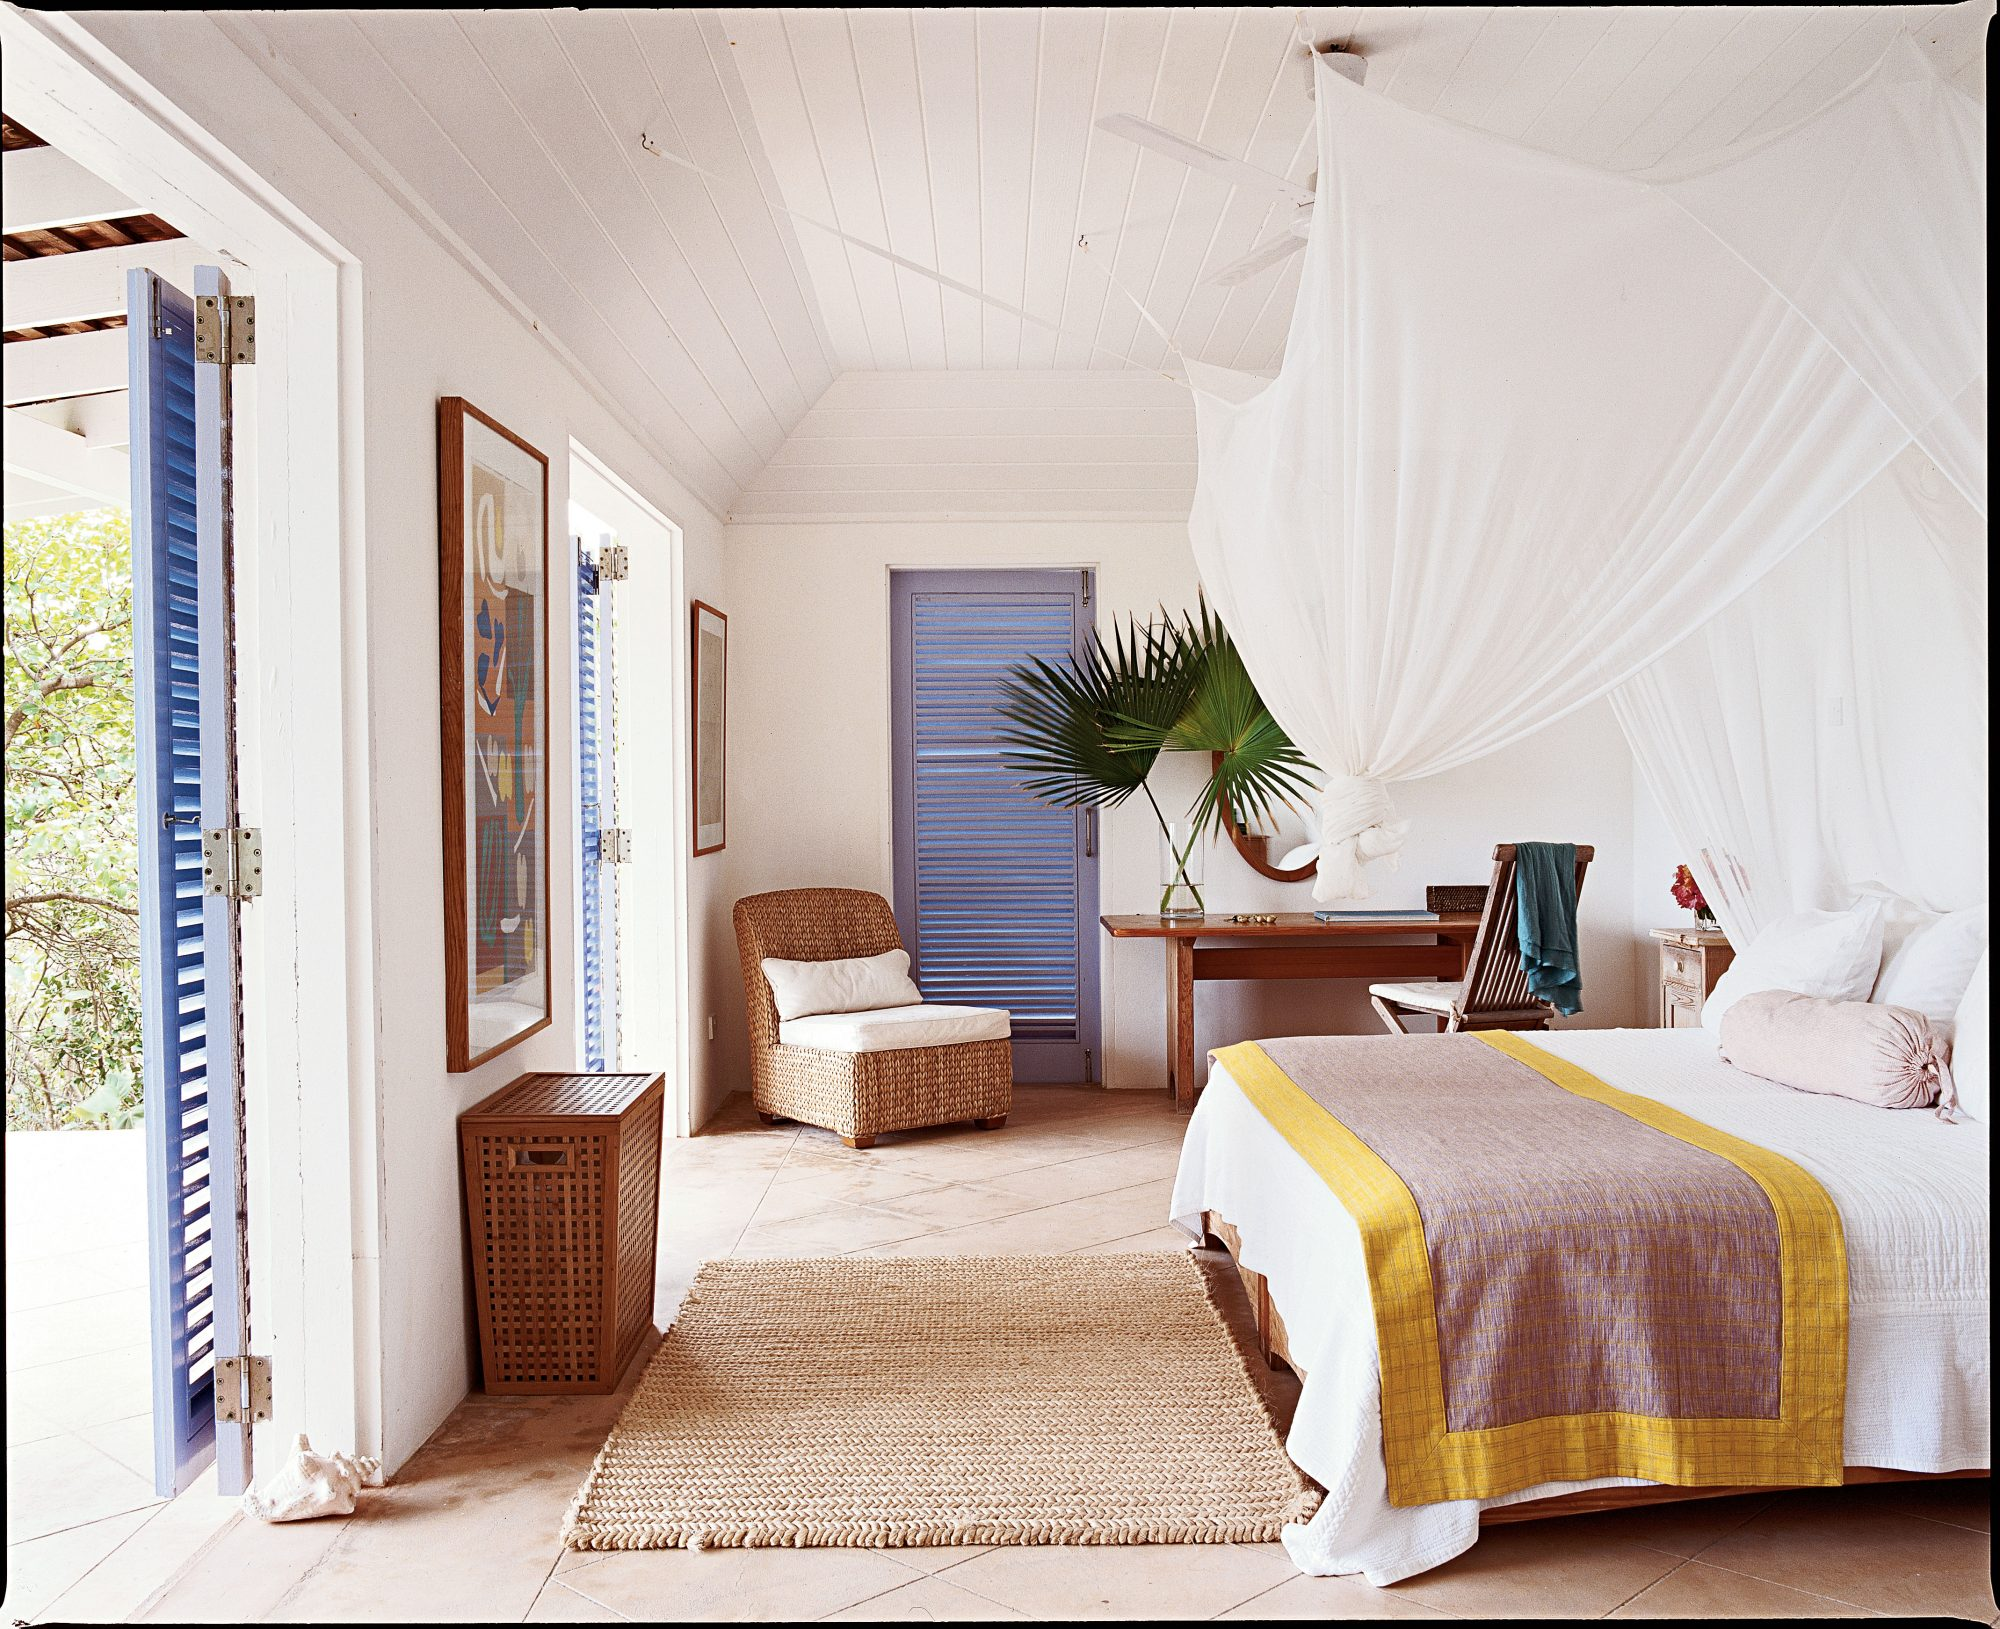 Our Prettiest Island Rooms: Airy Bedroom